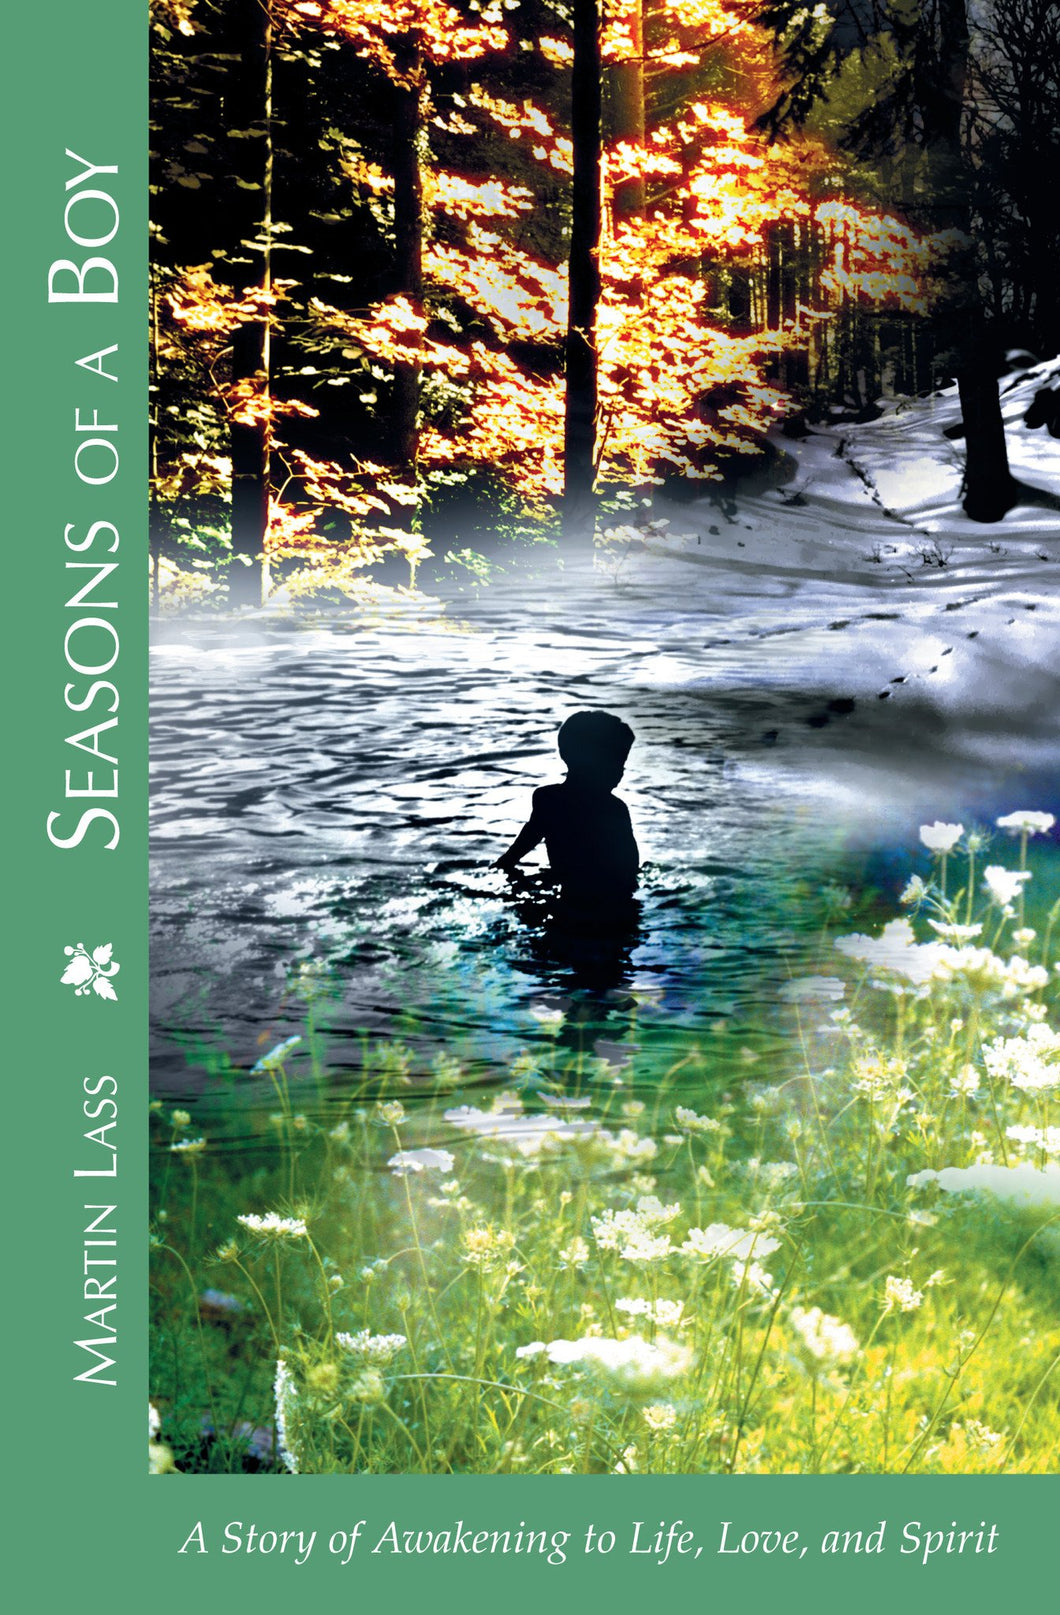 Seasons of a Boy - A Story of Awakening to Life, Love, and Spirit